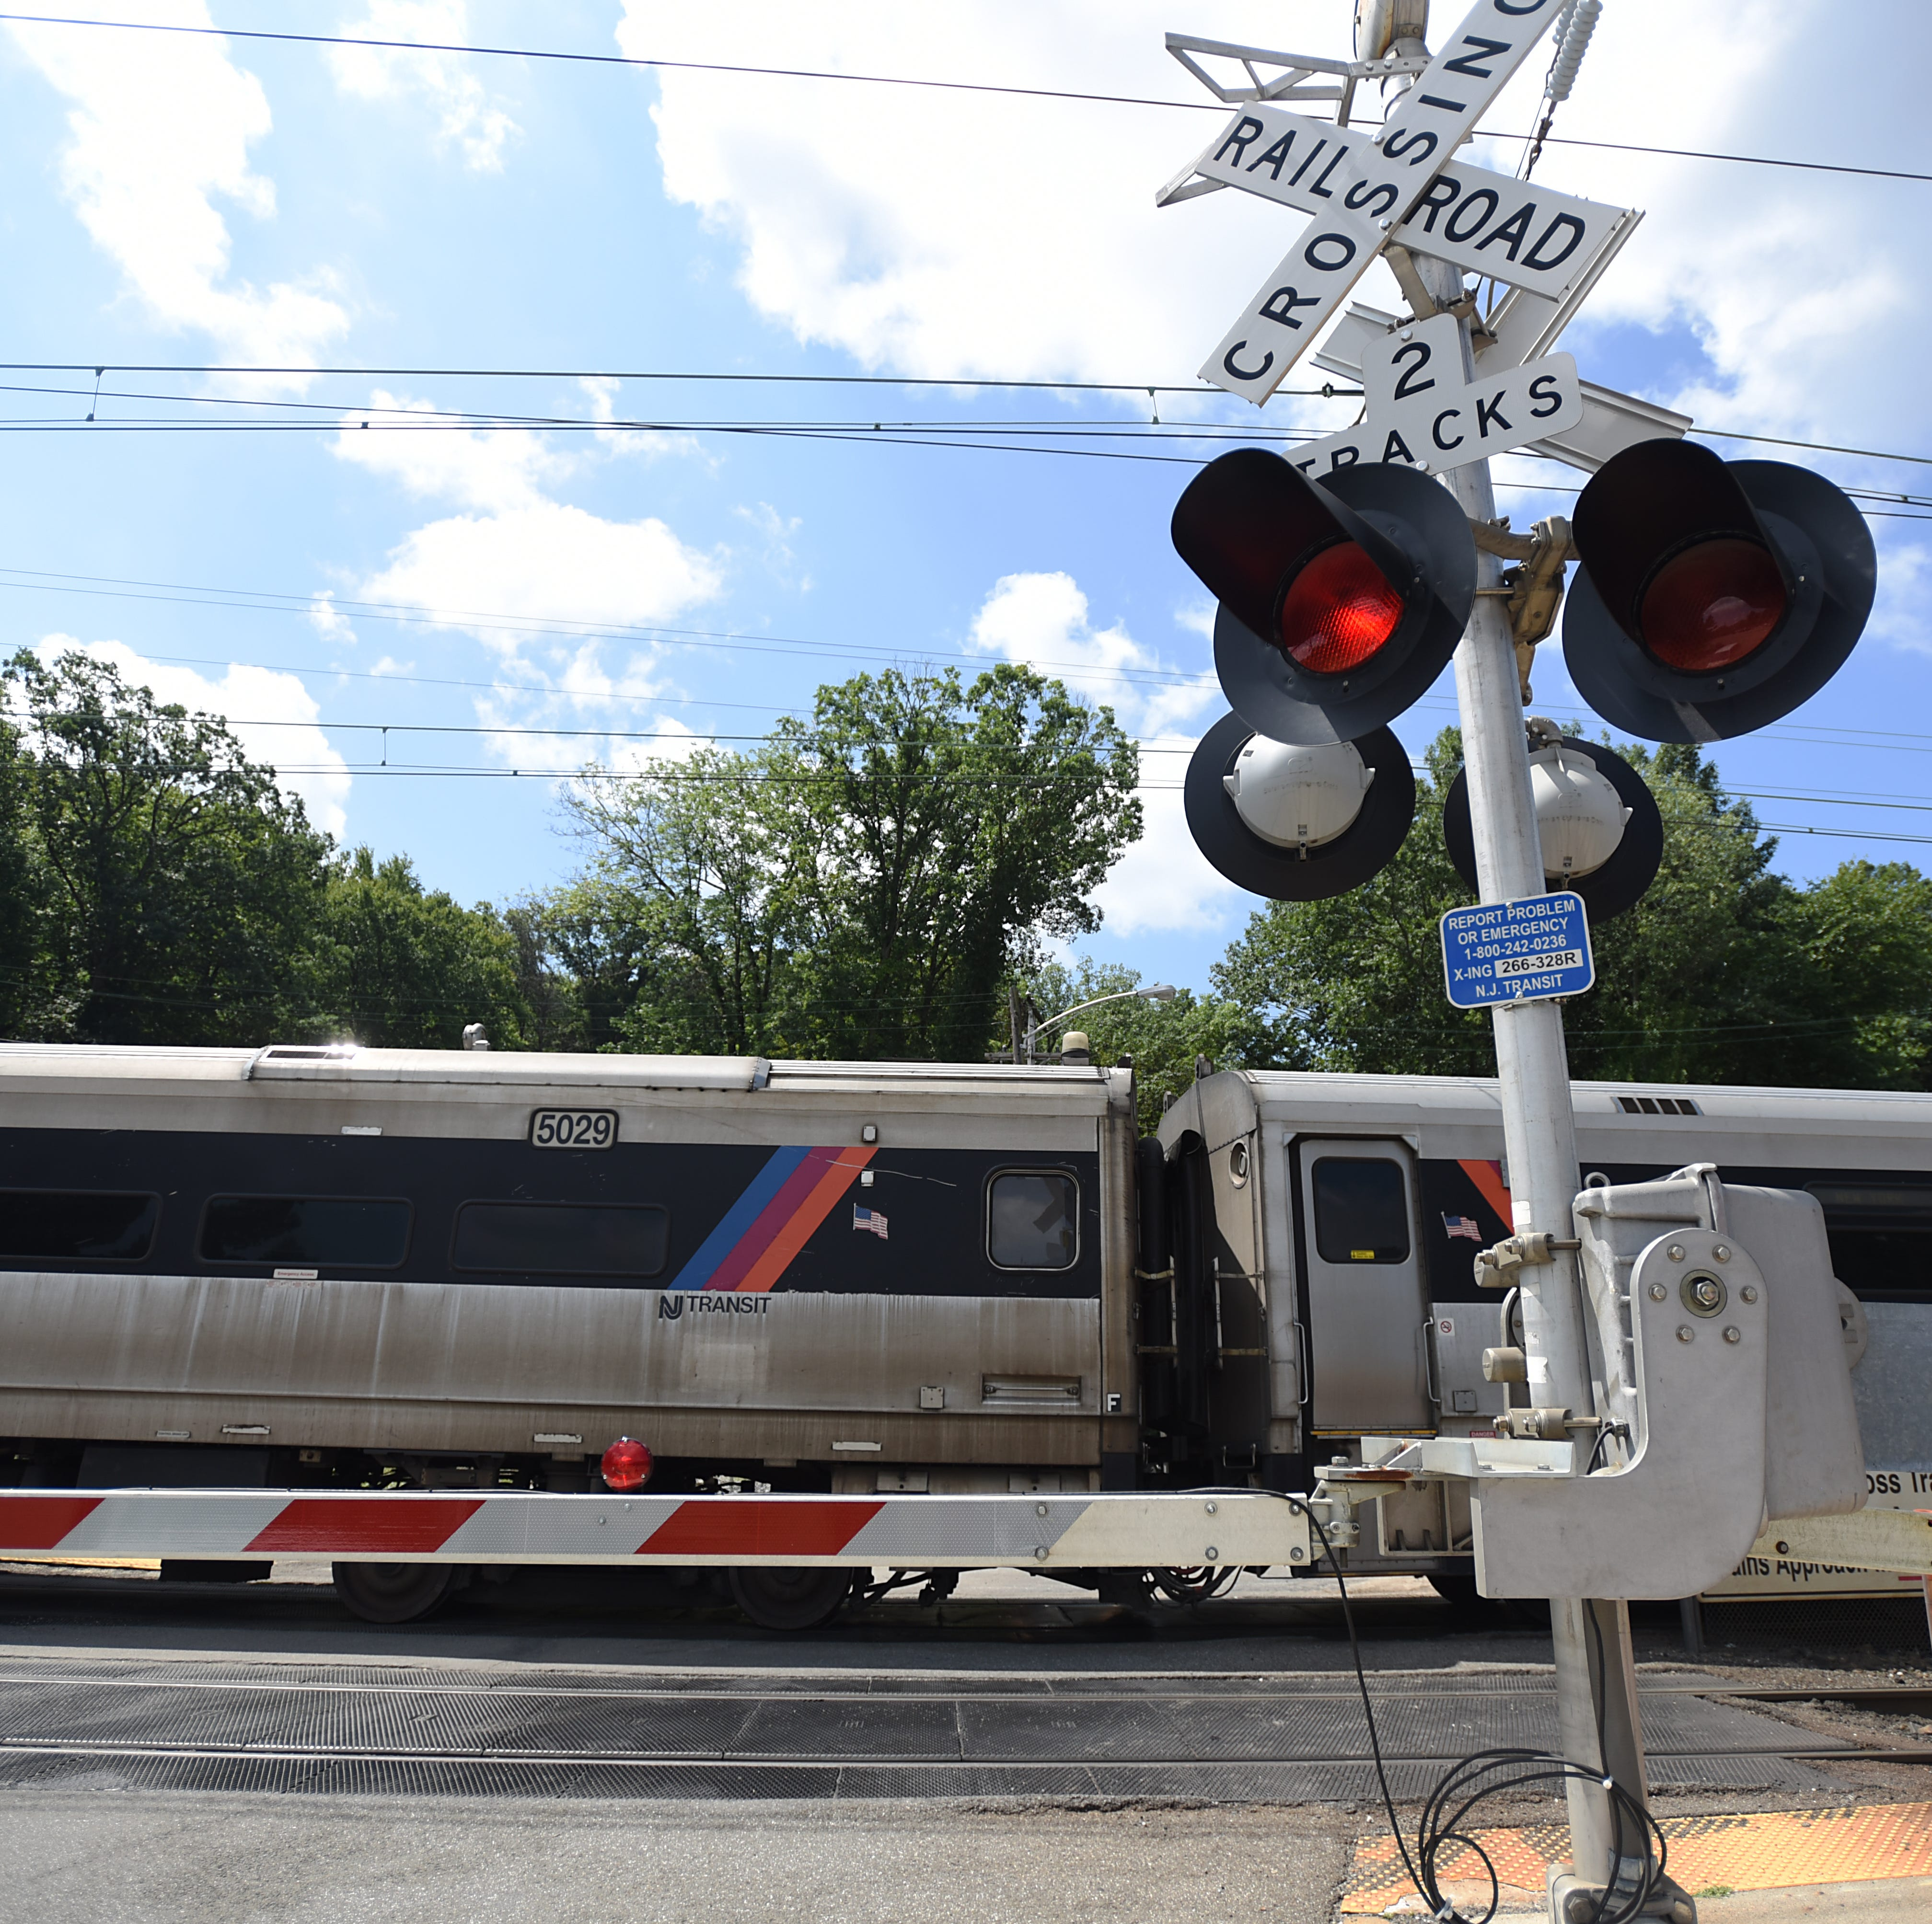 One killed after being struck by train on Montclair-Boonton line in Montclair